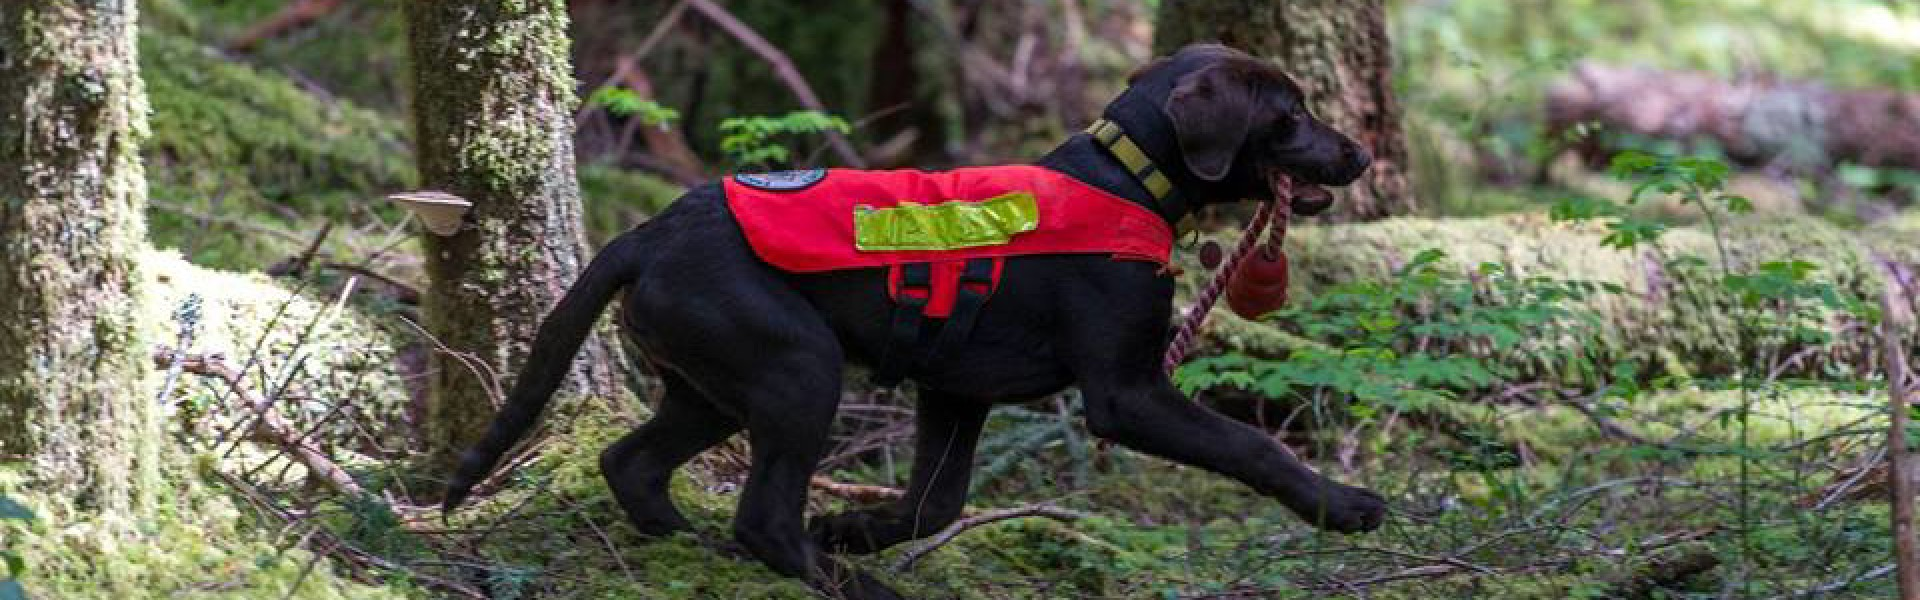 King County Search Dogs